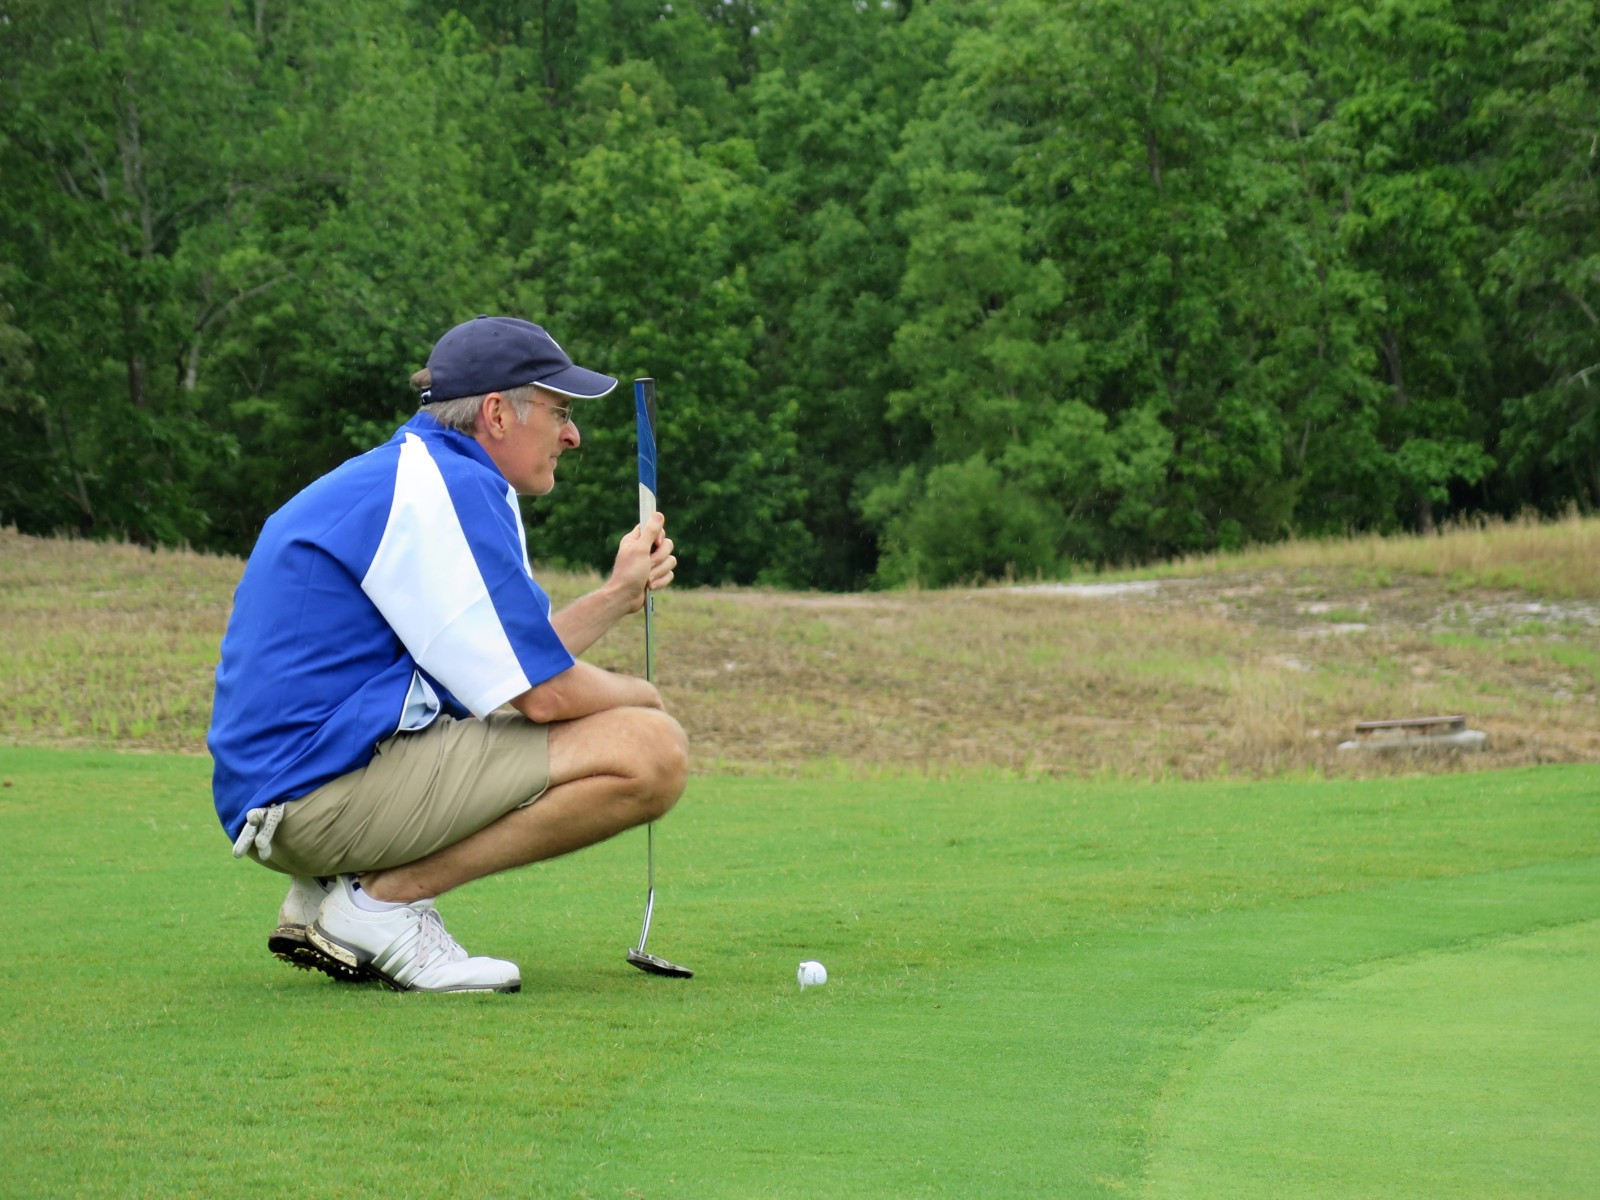 man golfer at golfing in golf tournament at golf course at Mossy Oak Properties Charity Event